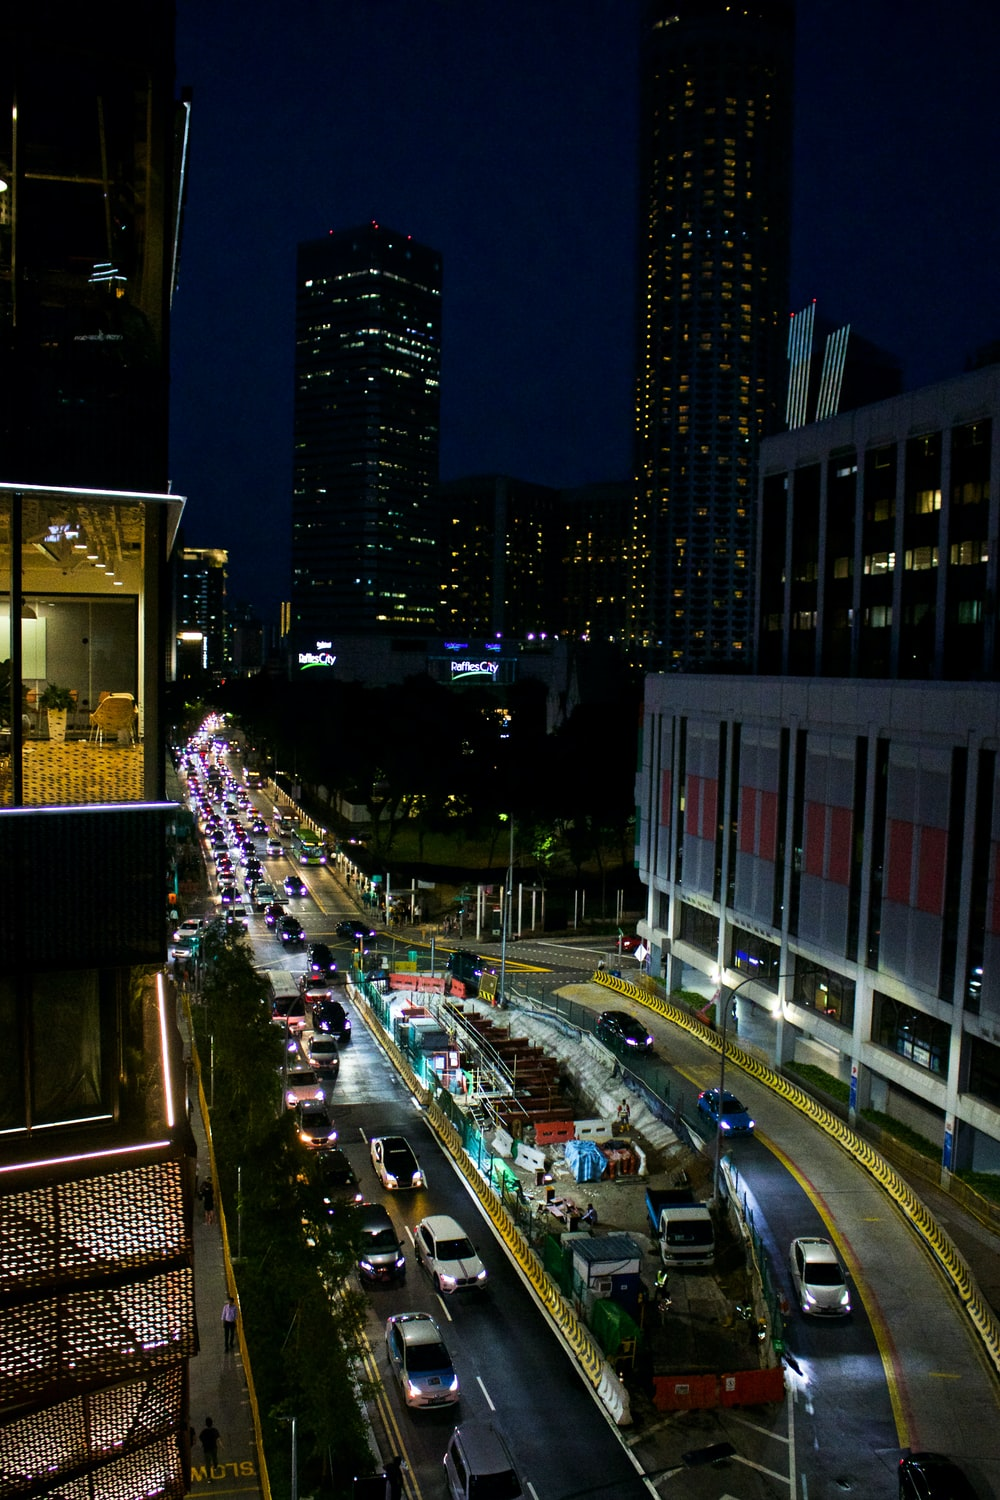 cars travelling at night